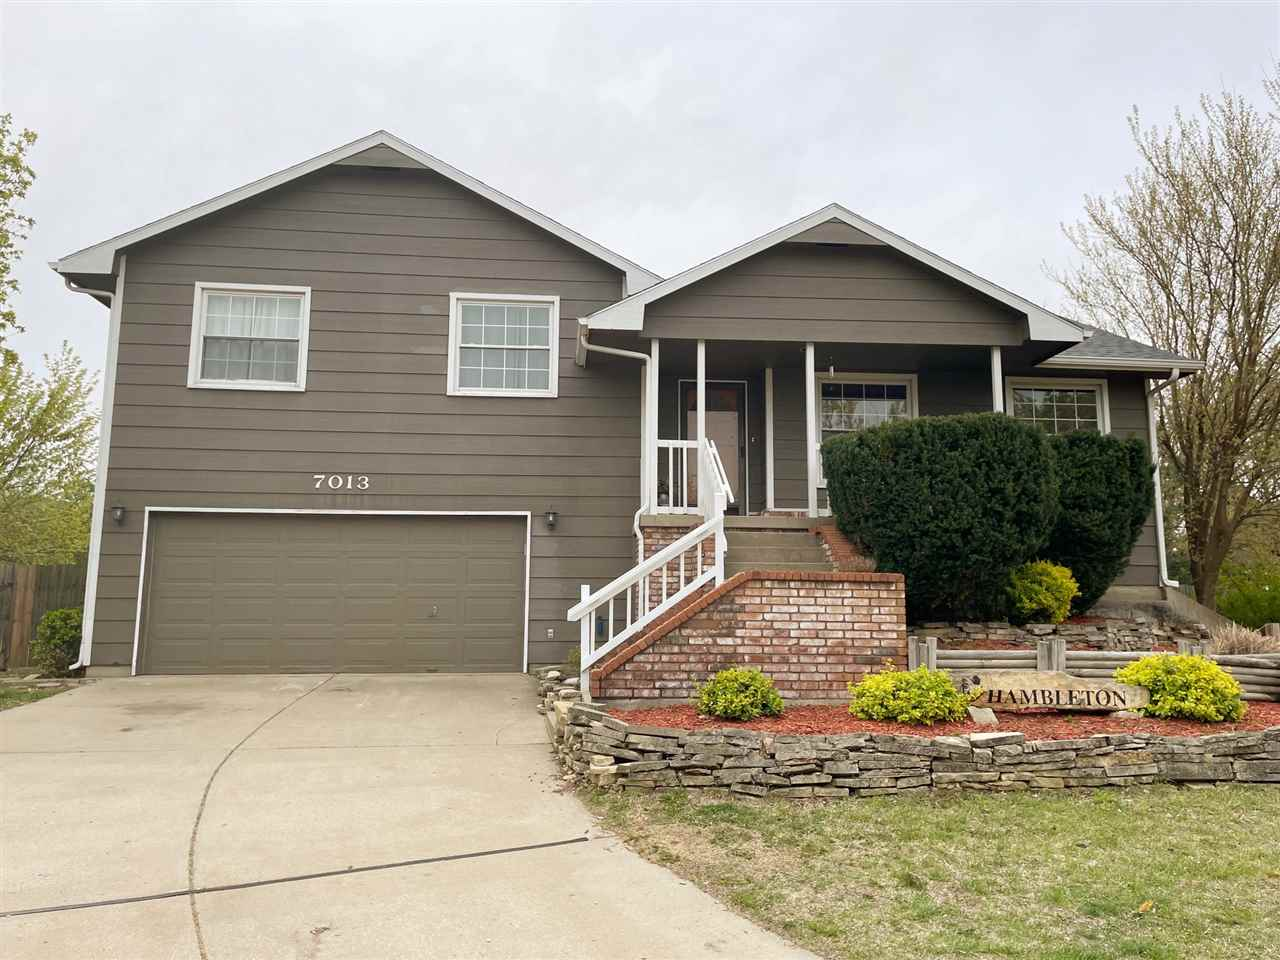 Showings will begin at 8:00AM Thursday, April 23rd. Welcome to this spacious quad level home with 3